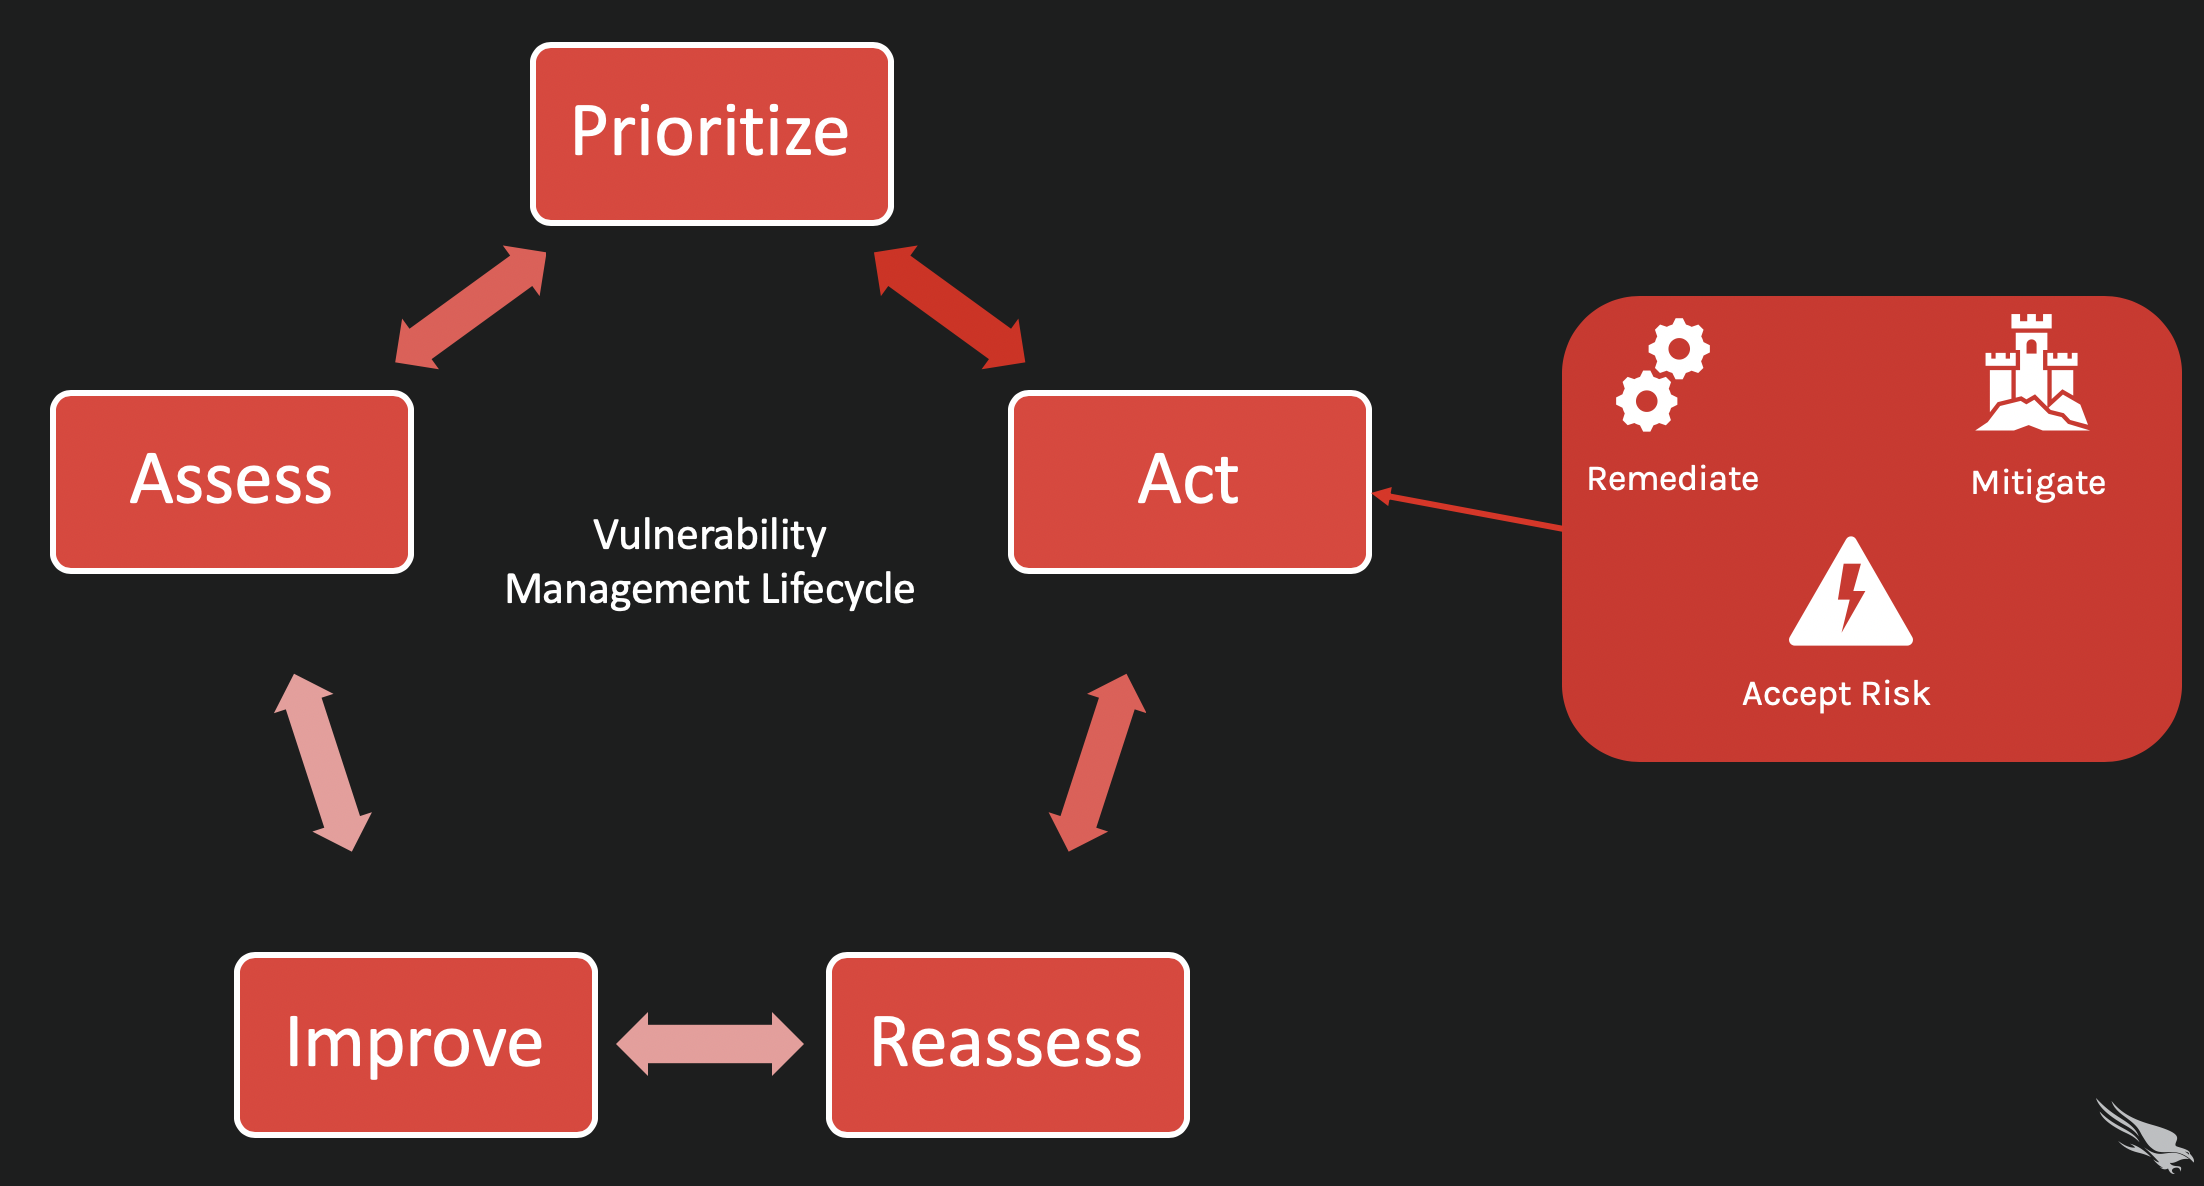 Act aspect of the vulnerability management cycle